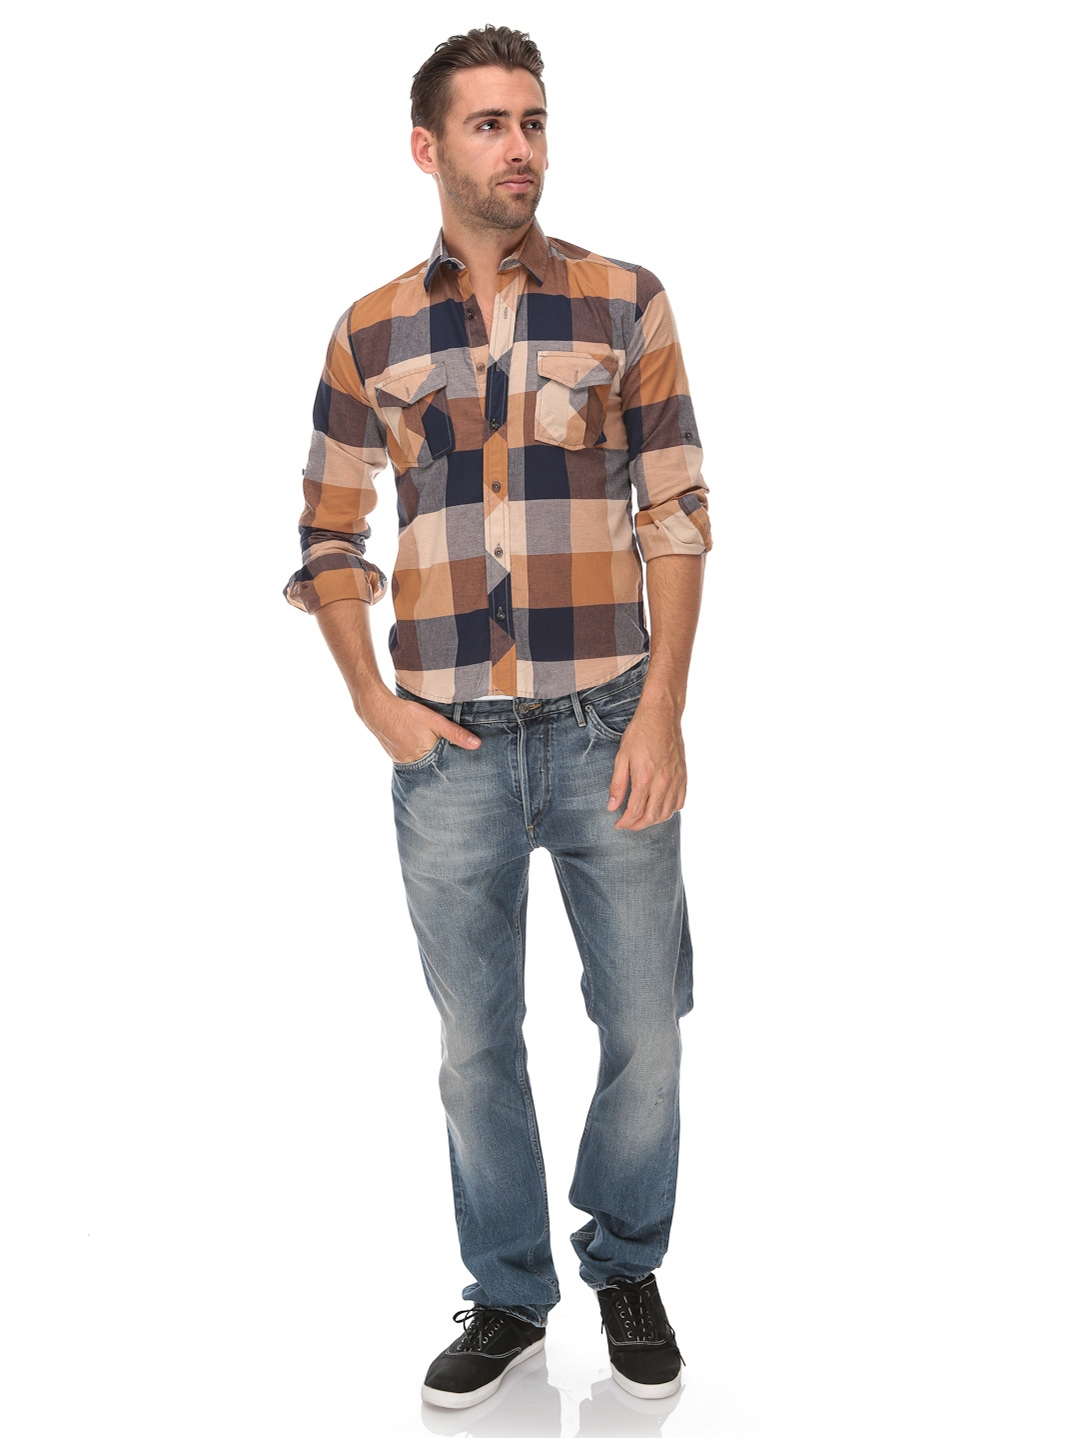 Browse the men's clothing selection for everything from men's designer clothing and formal wear to casual attire like hoodies and sweatshirts or lounge wear. Belk features a great variety of sizes, catering to big and tall needs as well.